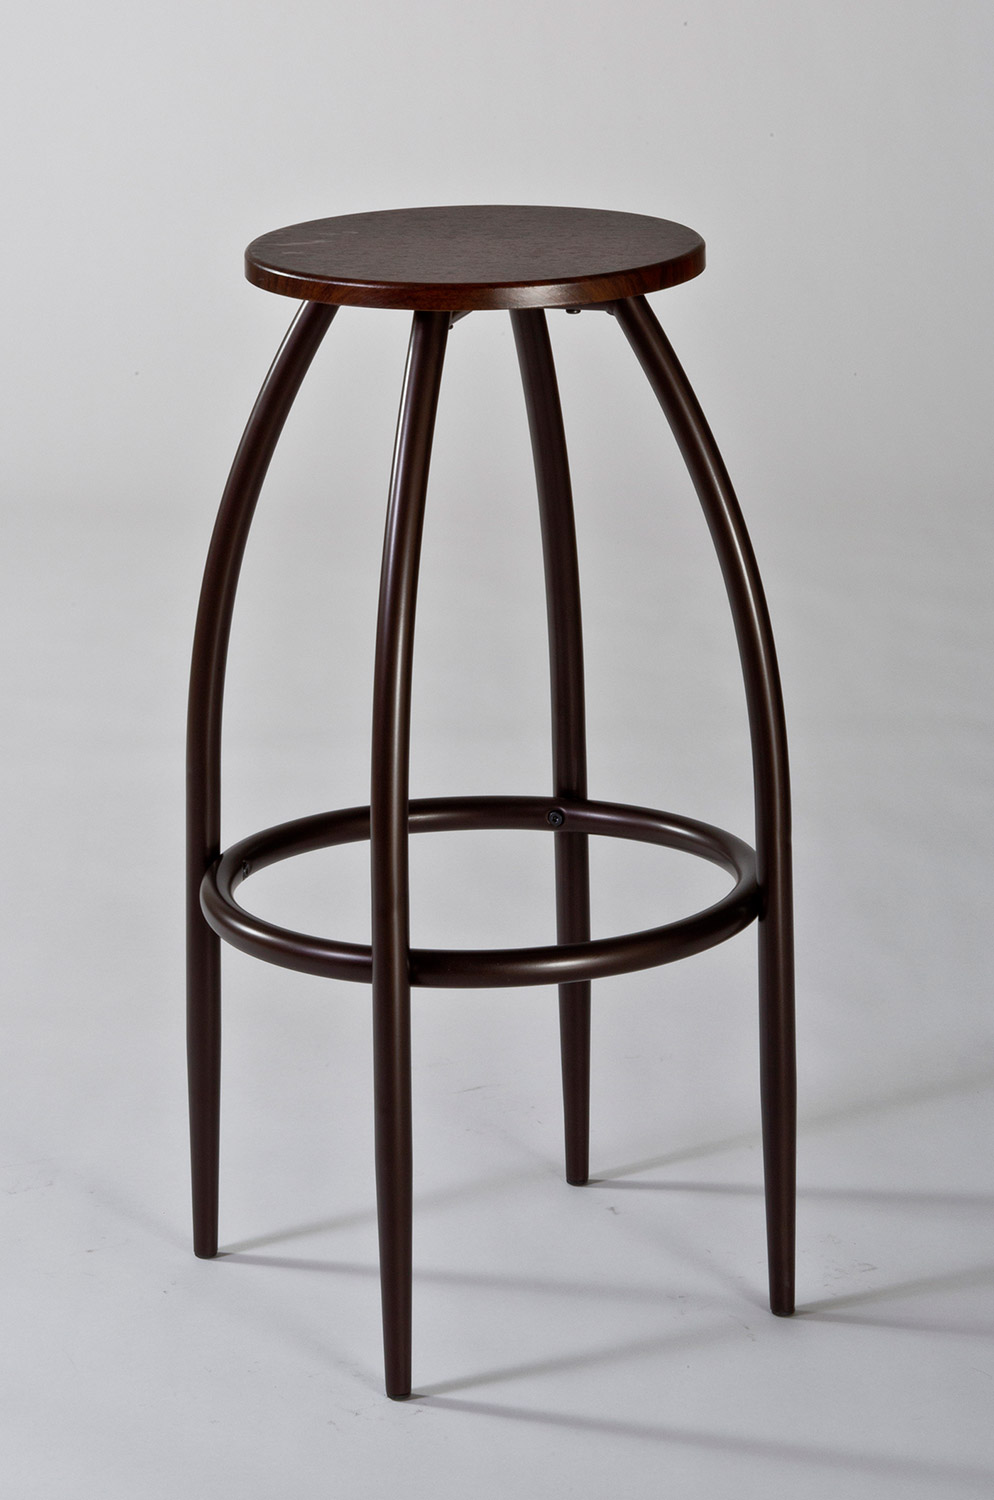 Hillsdale Bowen Backless Adjustable Bar Stool with Nested Leg - Dark Grey/Walnut